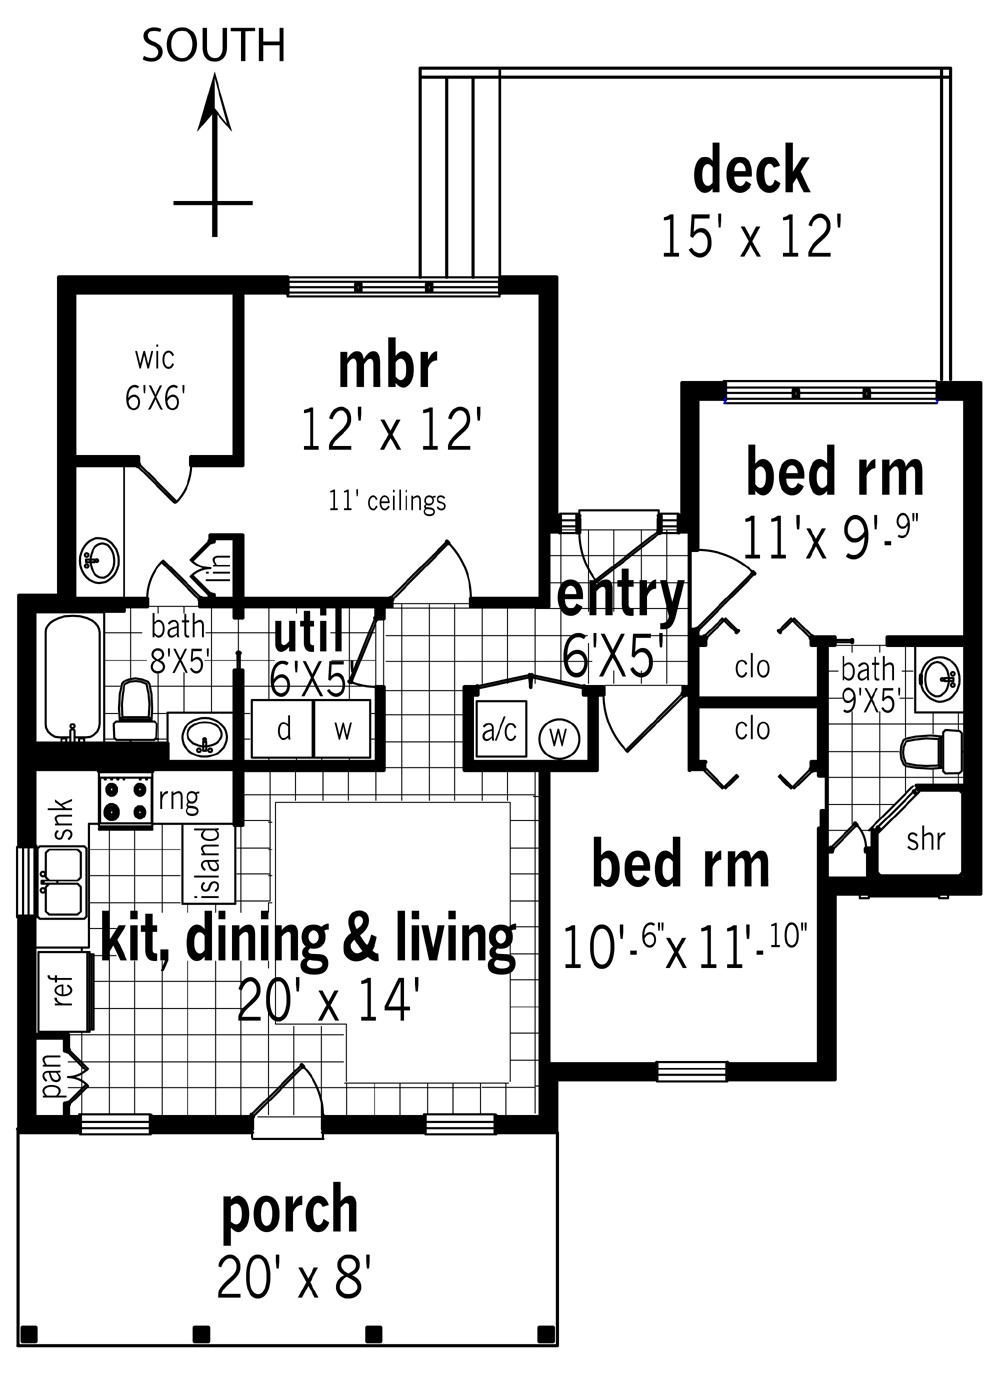 House Plans Design software Awesome Cottage House Plan with 3 Bedrooms and 2 5 Baths Plan 3162